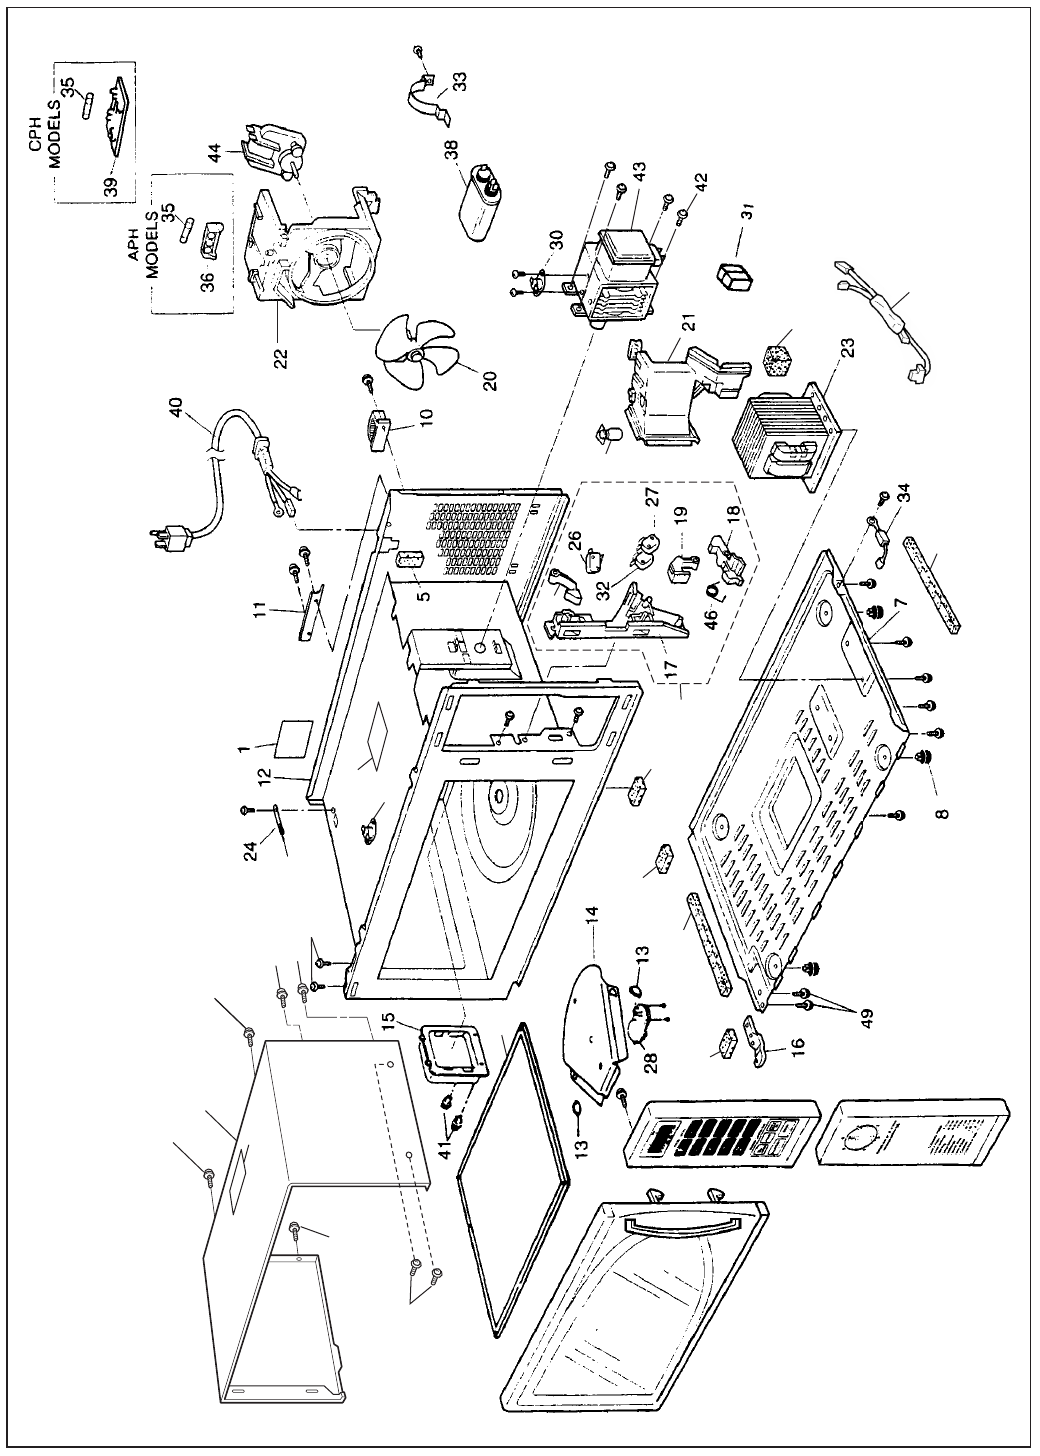 emerson microwave wiring diagram emerson get free image about wiring diagram